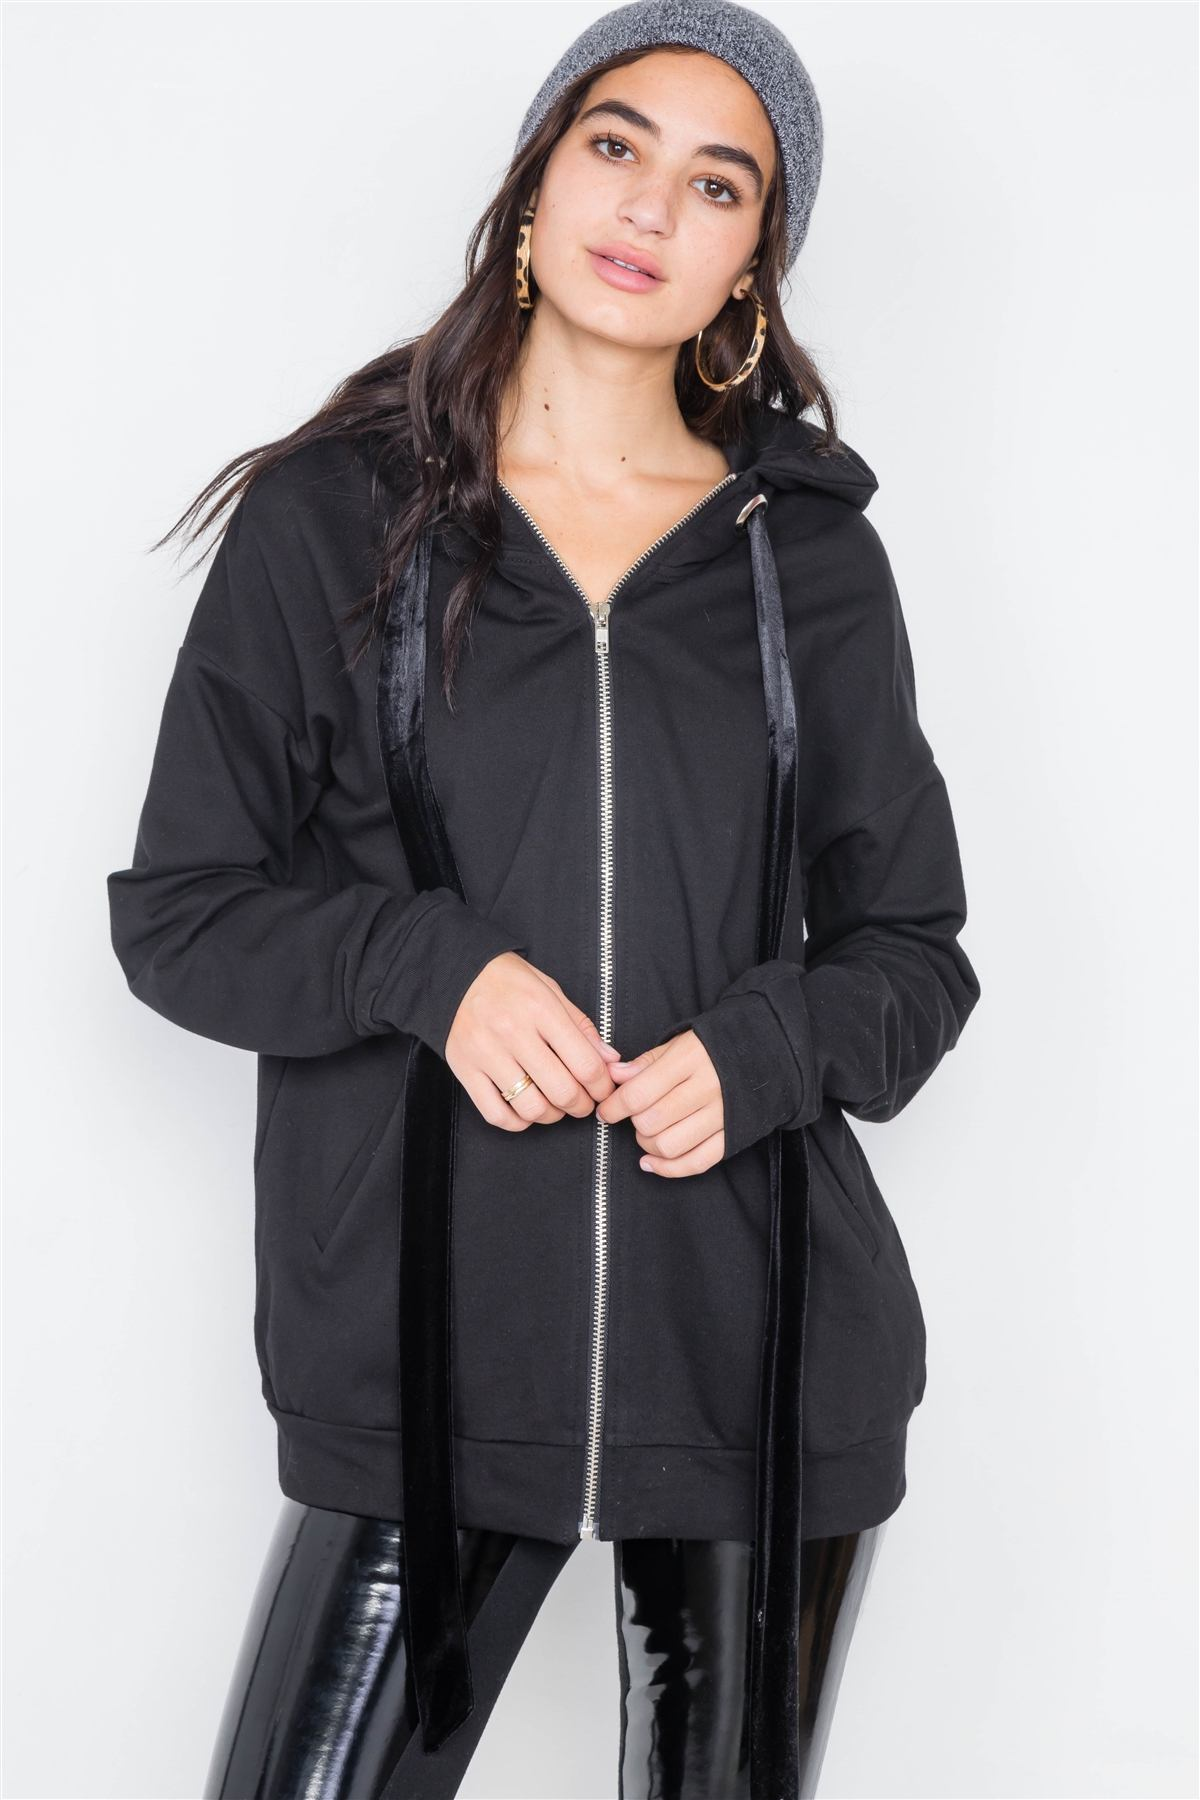 Black Cotton Zip-up Hoodie Sweater